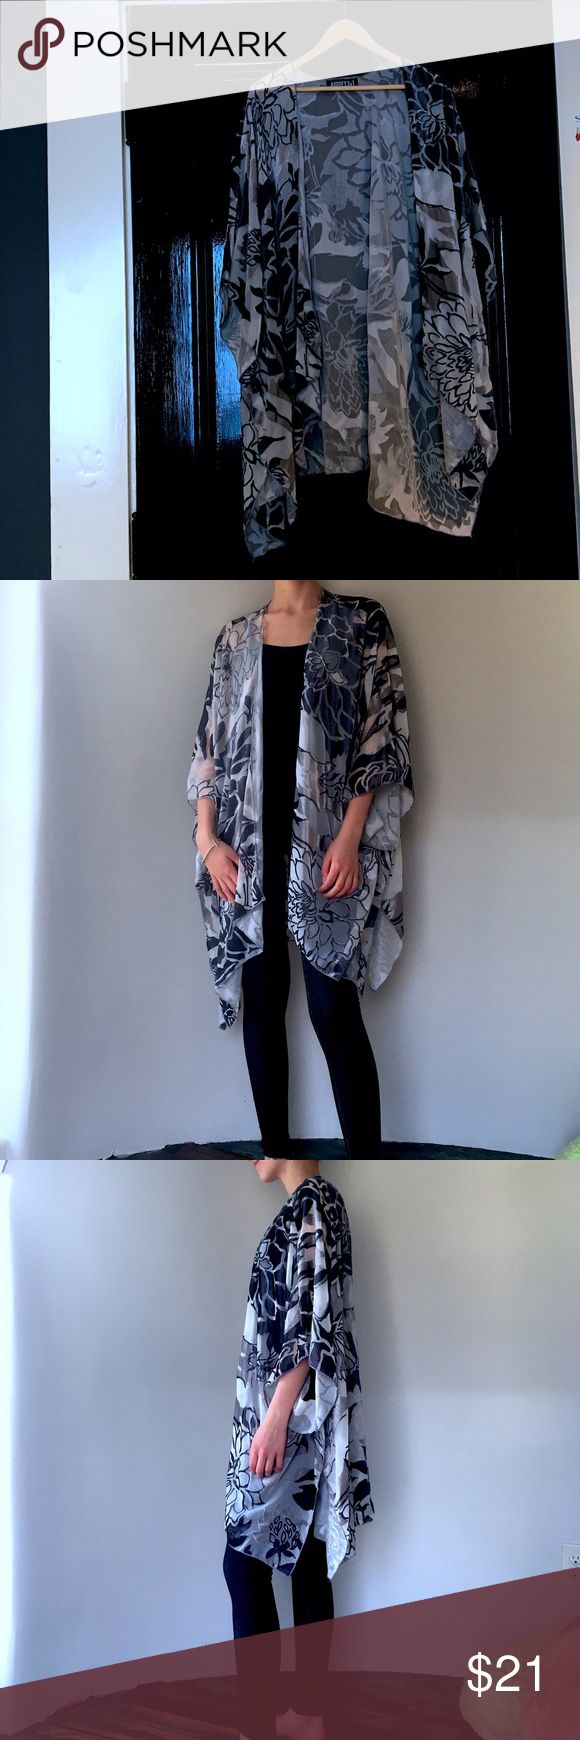 Audrey 3 + 1 floral kimono This is a gorgeous black and grey kimono. It is very soft and it is sheer. It has a very rock n' roll vibe to it! Although it is brand new and has never been worn, it has been hanging in the closet & the plastic straps have put slight stress on the fabric.  Besides that small little flaw...it is gorgeous! audrey 3 + 1 Sweaters Shrugs & Ponchos